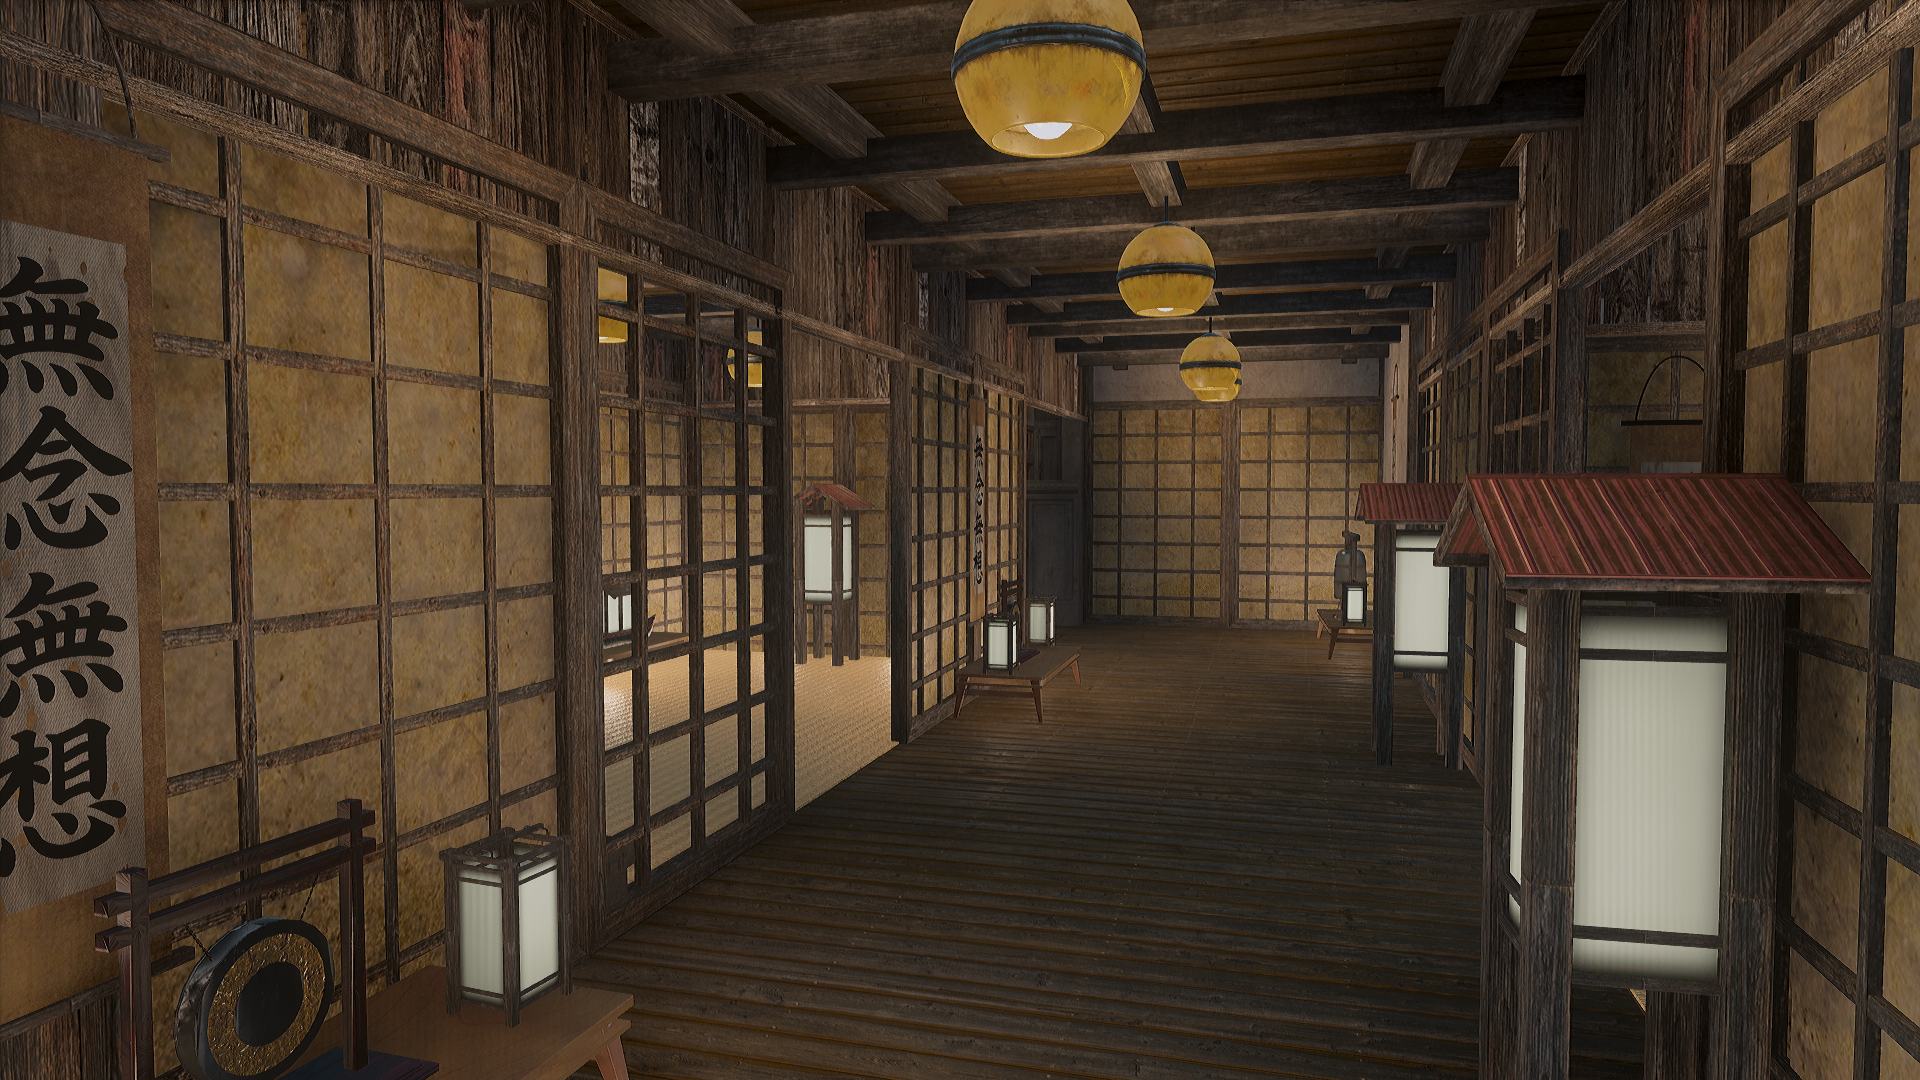 Fallout 4 Japanese Castle Interior Update 2 At Fallout 4